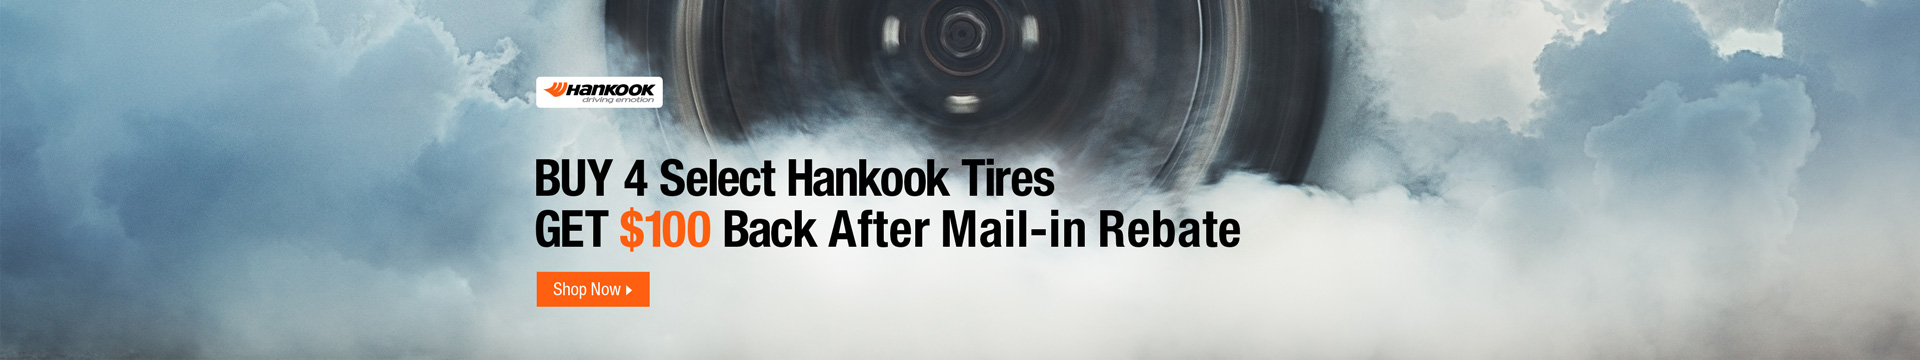 Buy 4 select Hankook tires get $100 back after mail-in rebate